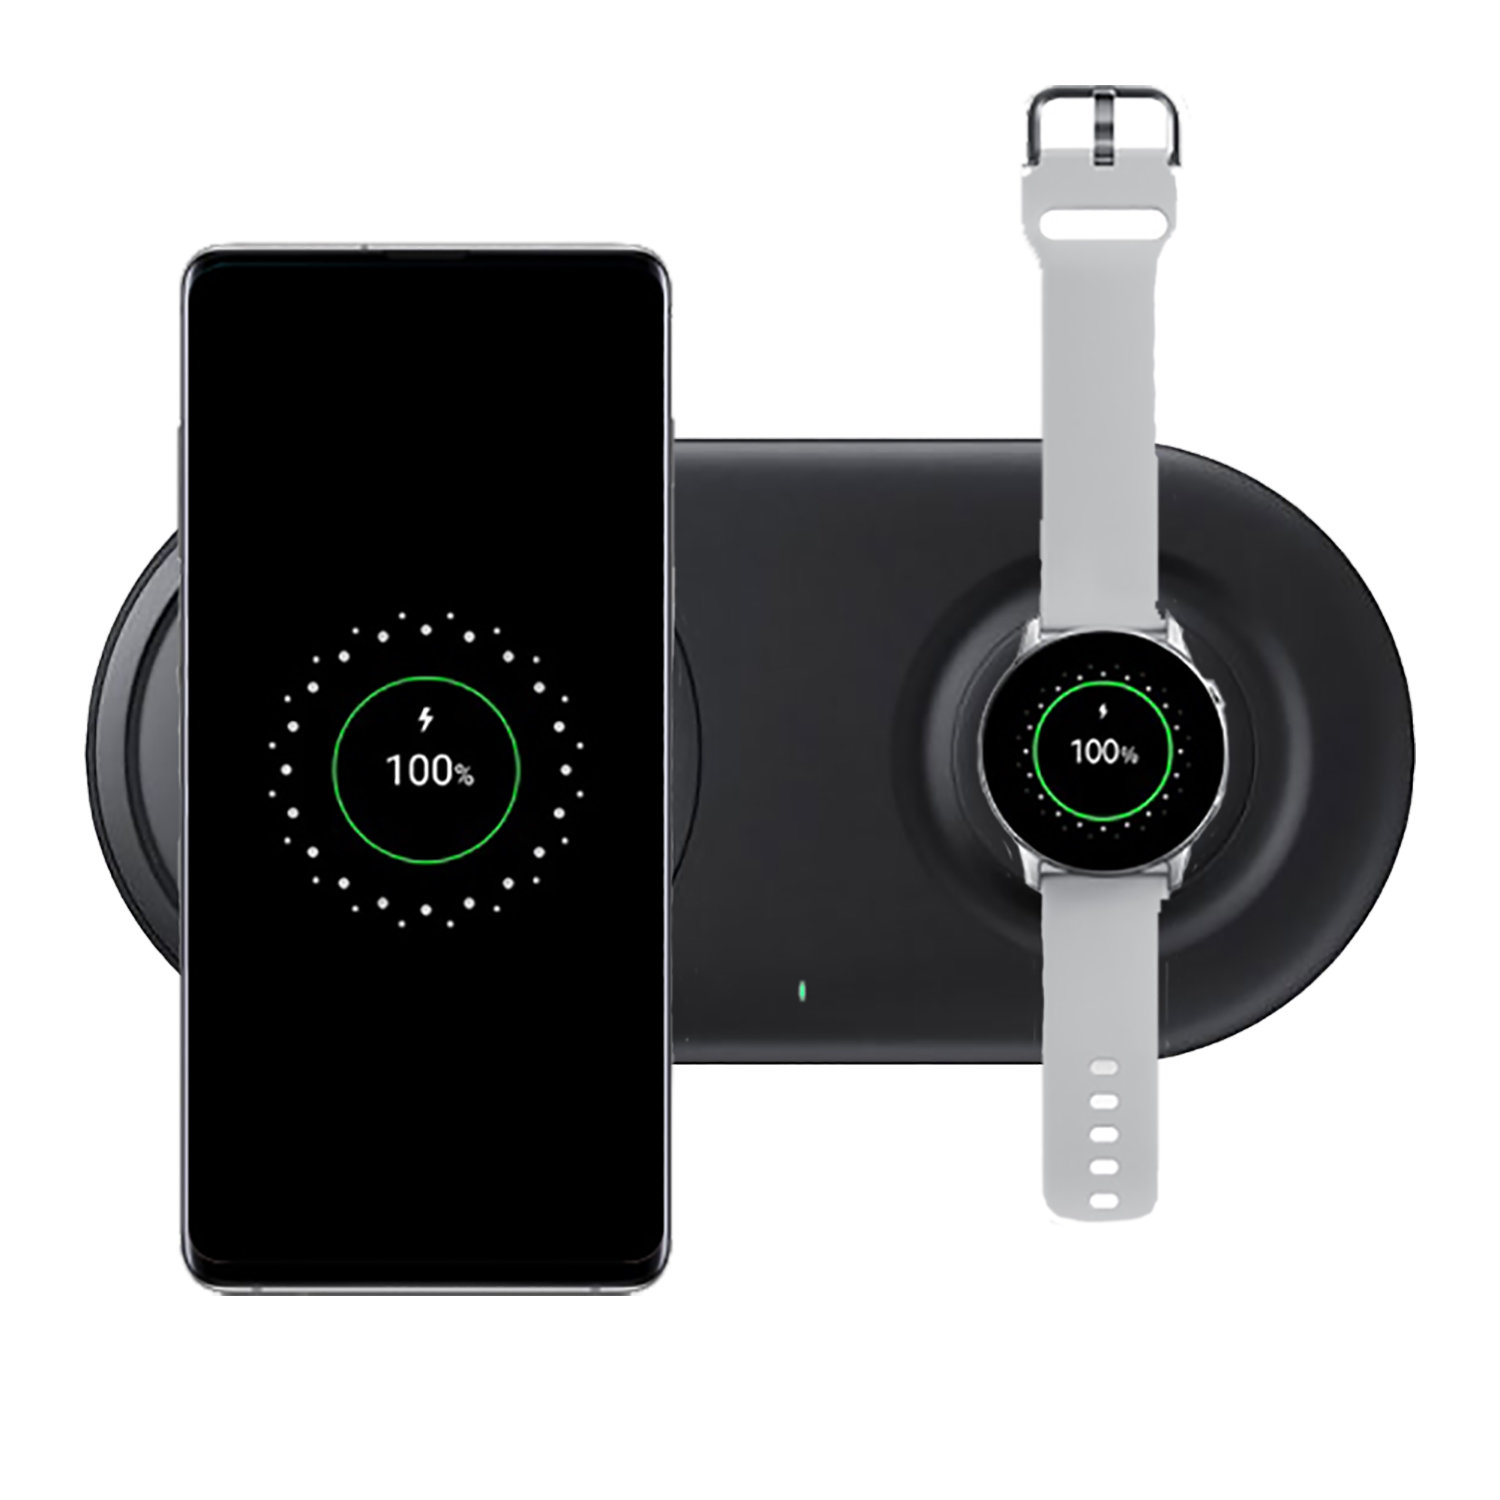 Official Samsung Wireless Fast Charging Duo Pad - Black